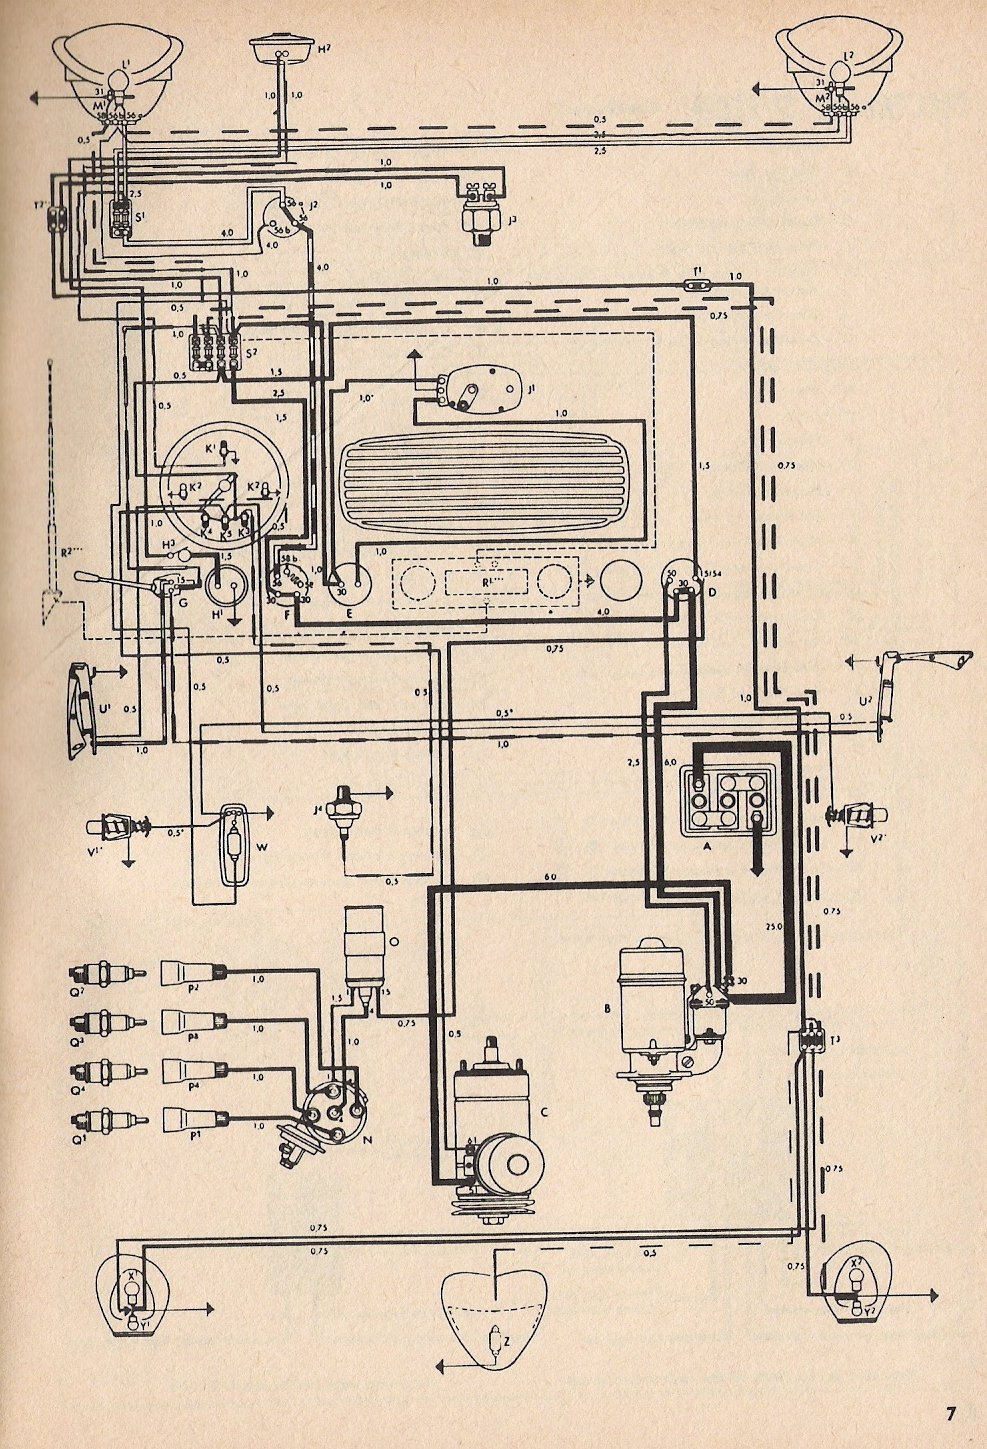 bug_54 thesamba com type 1 wiring diagrams 1971 vw bus wiring diagram at n-0.co